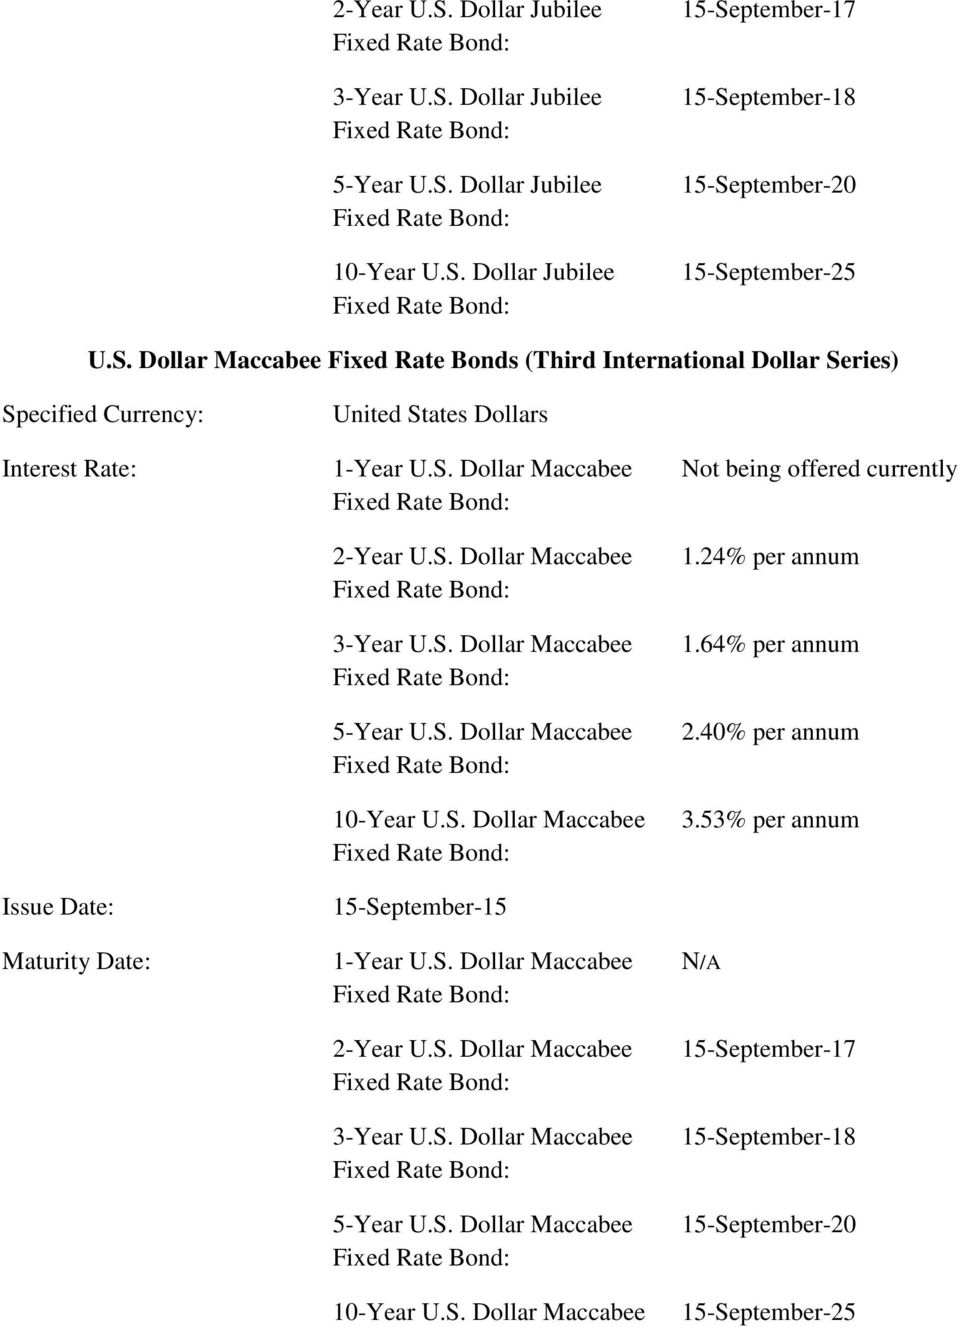 S. Dollar Maccabee Fixed Rate Bond: 3-Year U.S. Dollar Maccabee Fixed Rate Bond: 5-Year U.S. Dollar Maccabee Fixed Rate Bond: 10-Year U.S. Dollar Maccabee Fixed Rate Bond: 15-September-15 1-Year U.S. Dollar Maccabee Fixed Rate Bond: 2-Year U.